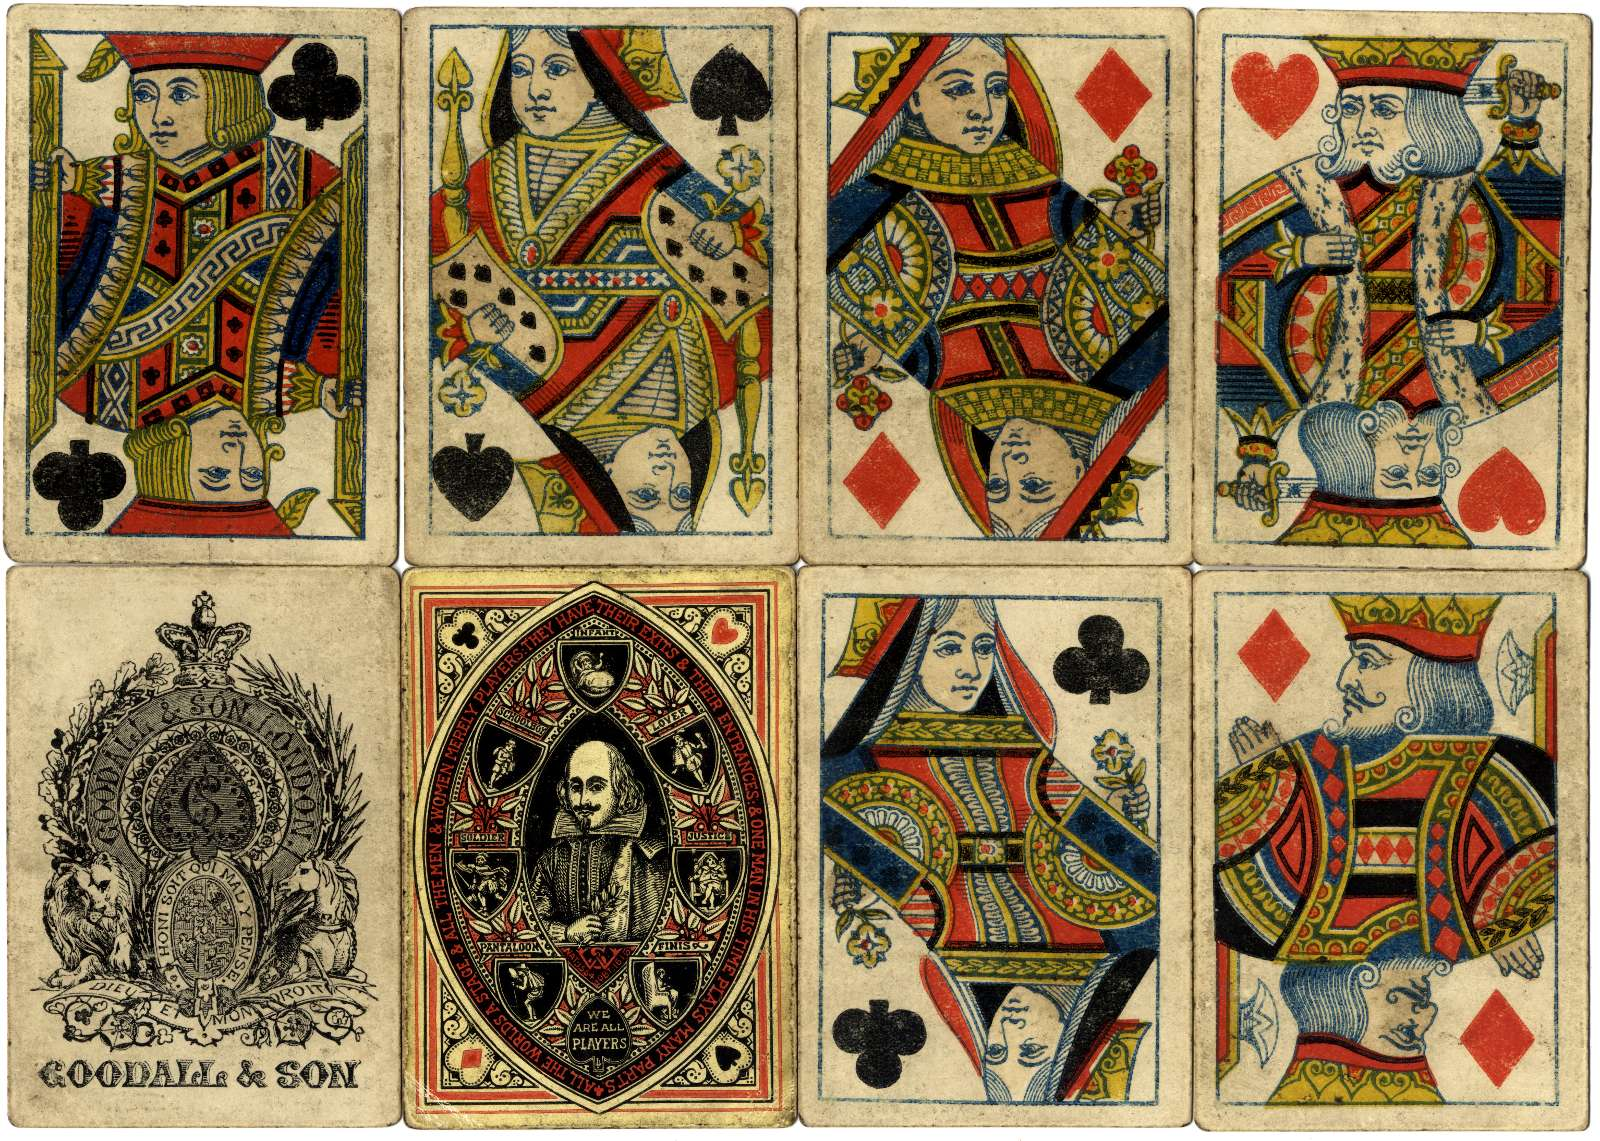 playing cards produced by Goodall & Son in 1864 to celebrate the tri-centenary of Shakespeare's birth